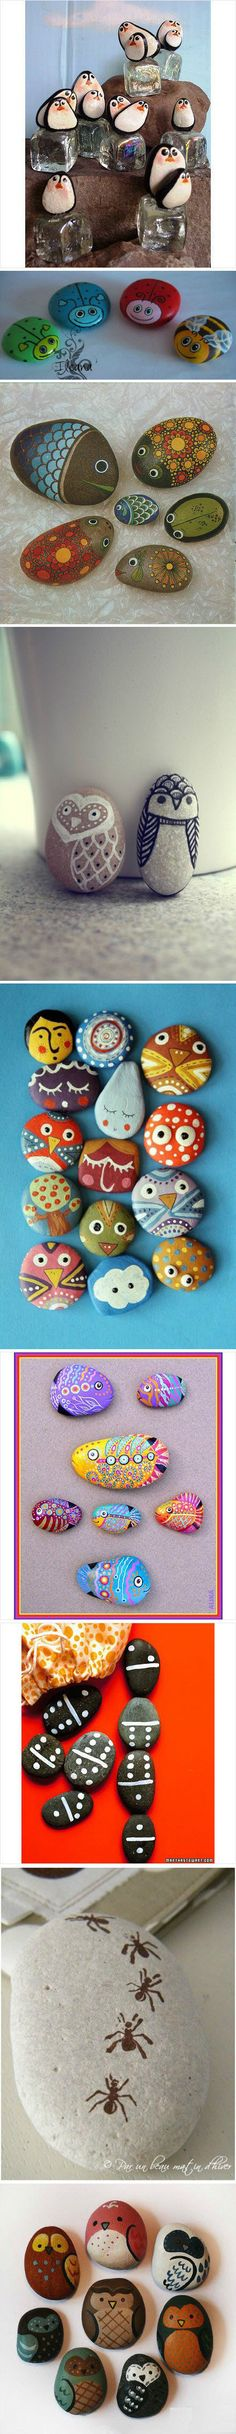 rock painting ideas.  Fun! would make cute gifts .